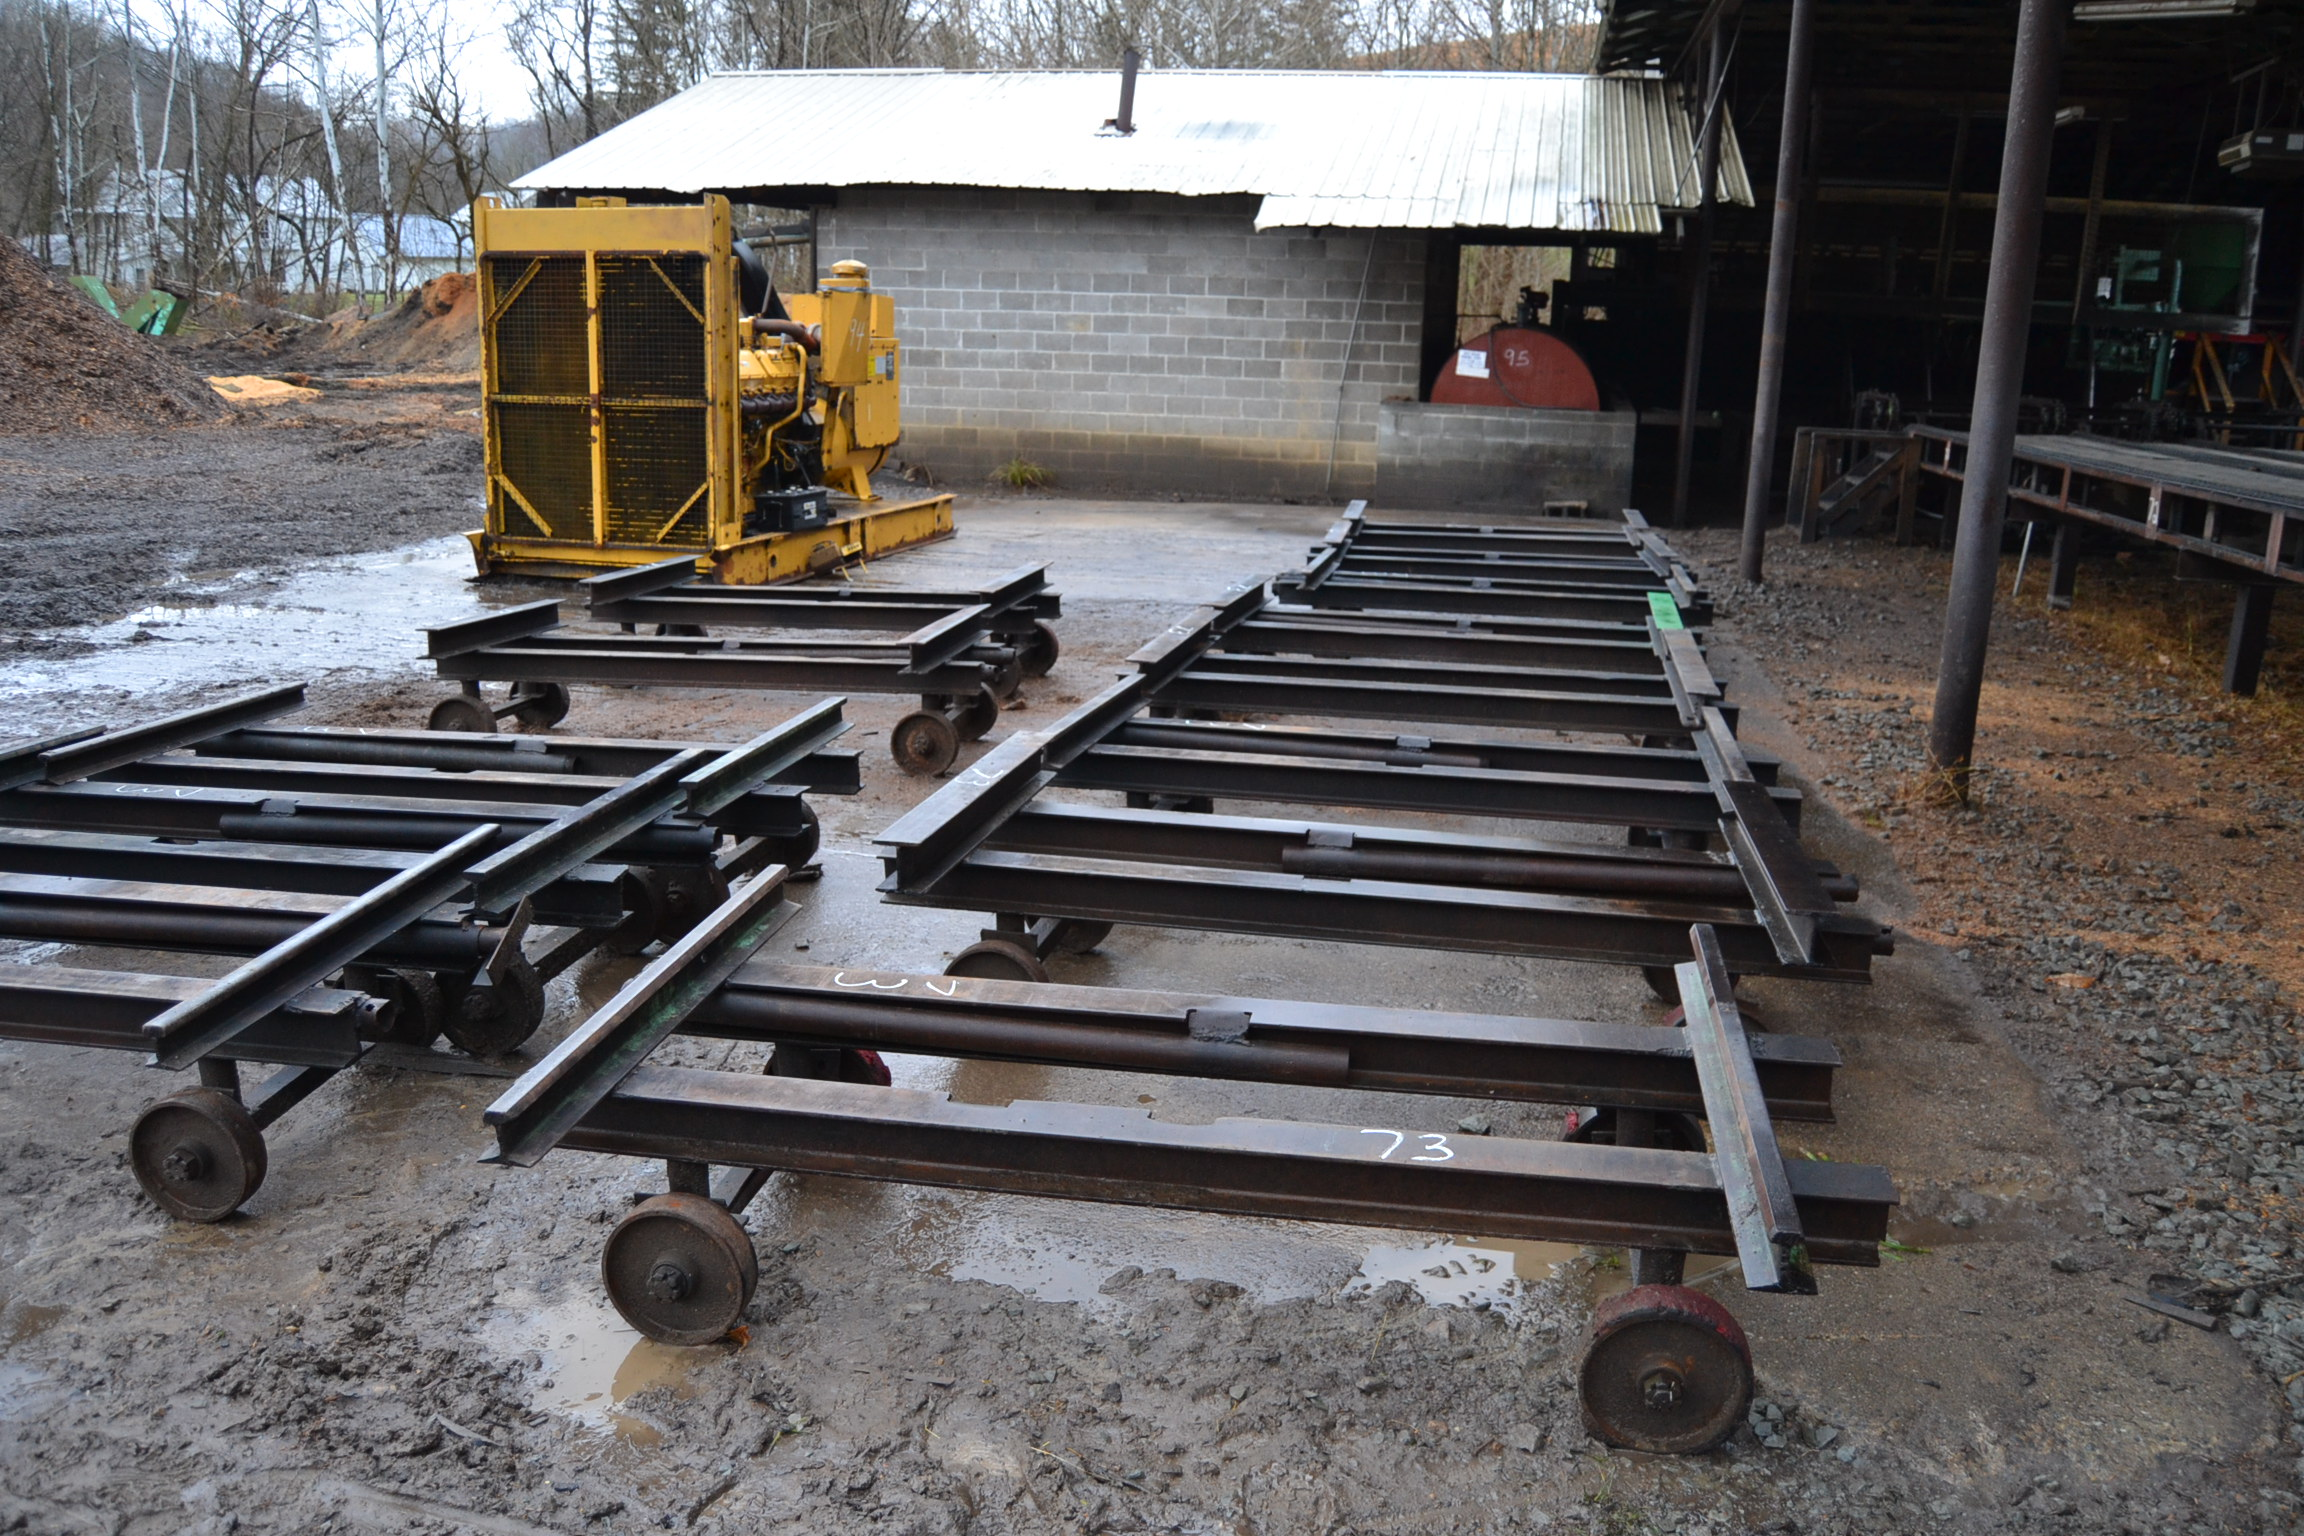 Lot 73 - 13 ALL STEEL LUMBER ROLL OUTS